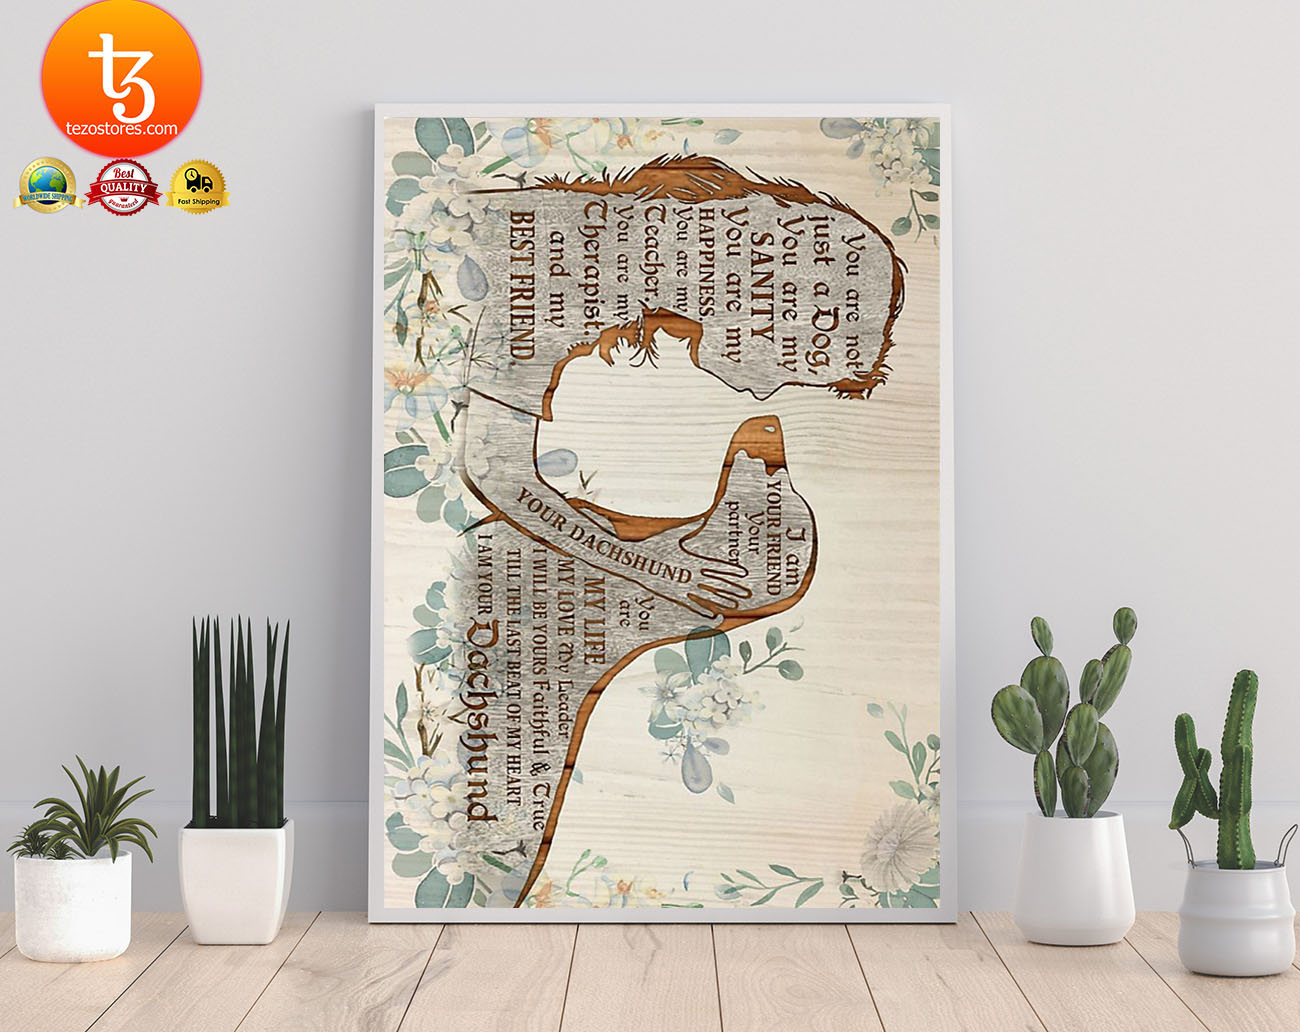 Dachshund I am your friend poster 21